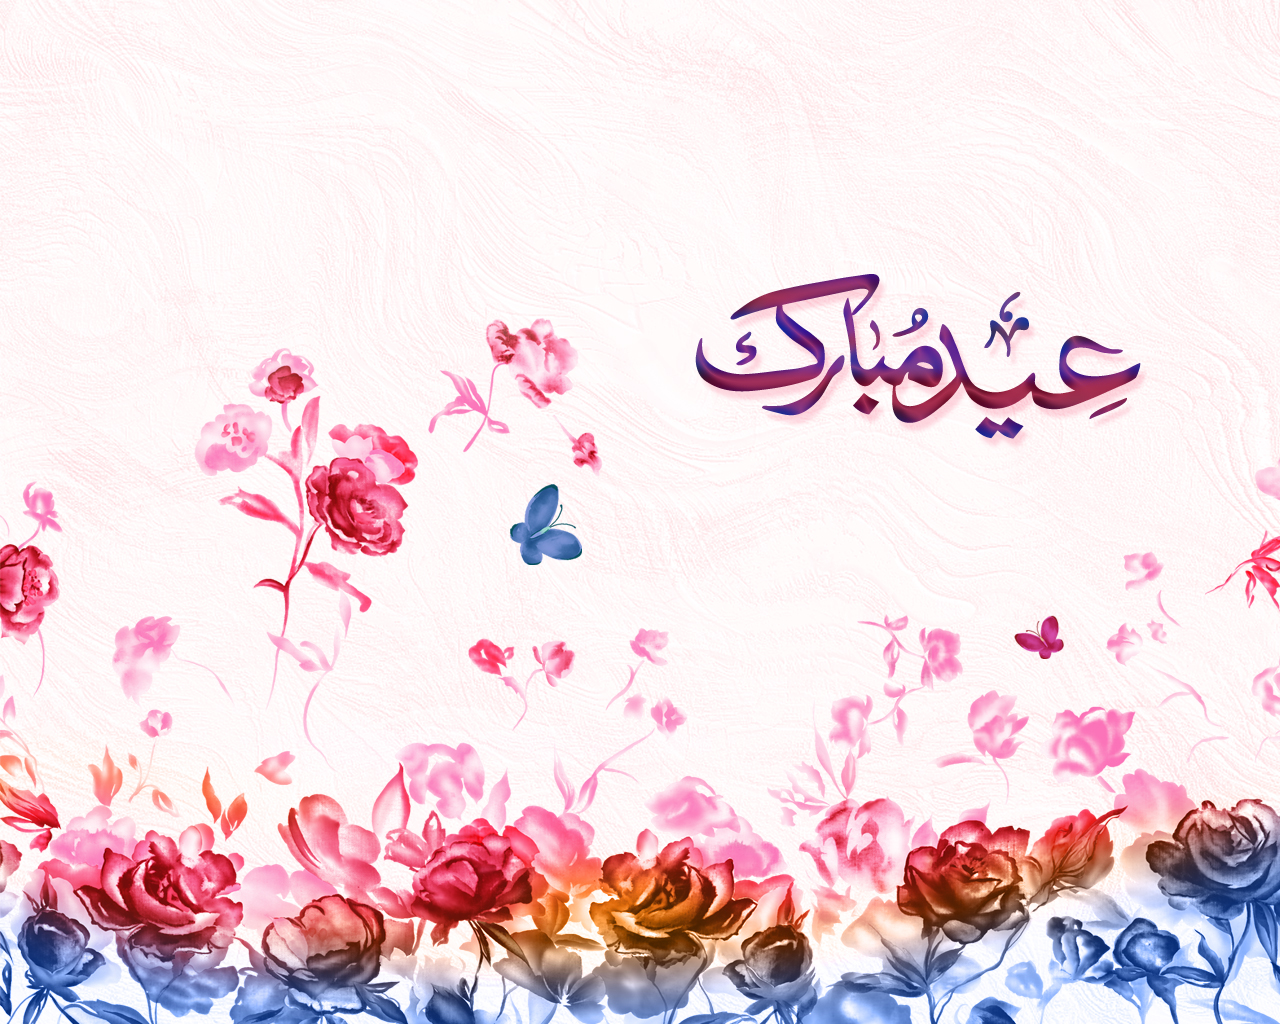 http://beautifulcoolwallpapers.files.wordpress.com/2011/08/wallpaper_eid_2009__by_superstarzafar.jpg